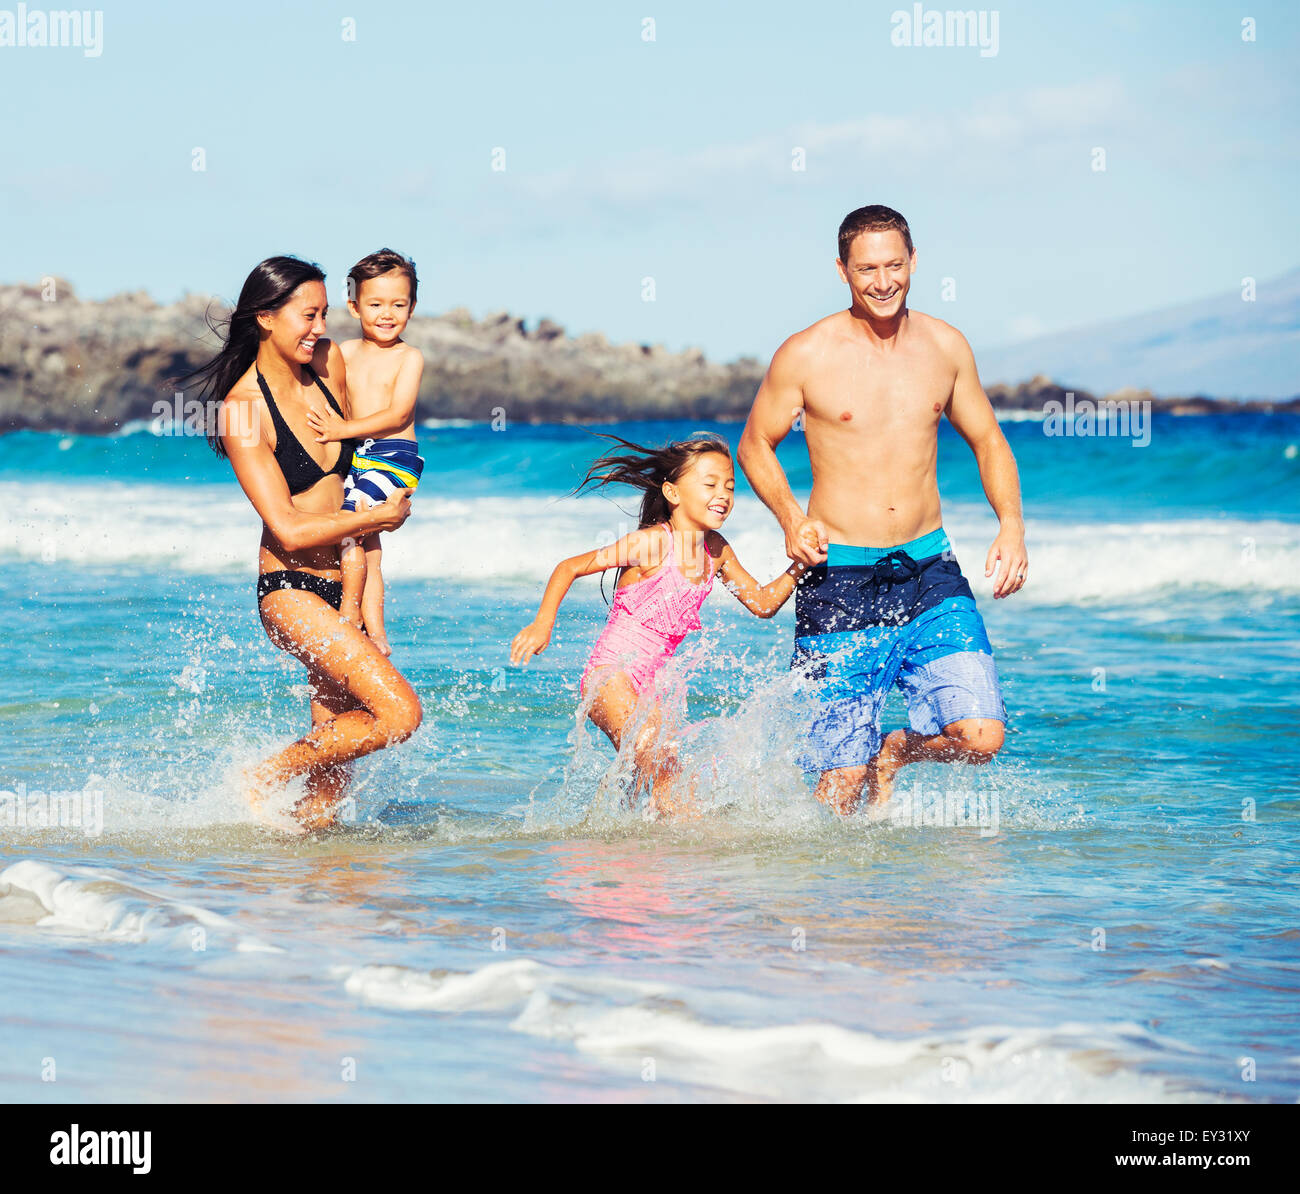 Young Happy Family Playing Having Fun at the Beach Outdoors - Stock Image